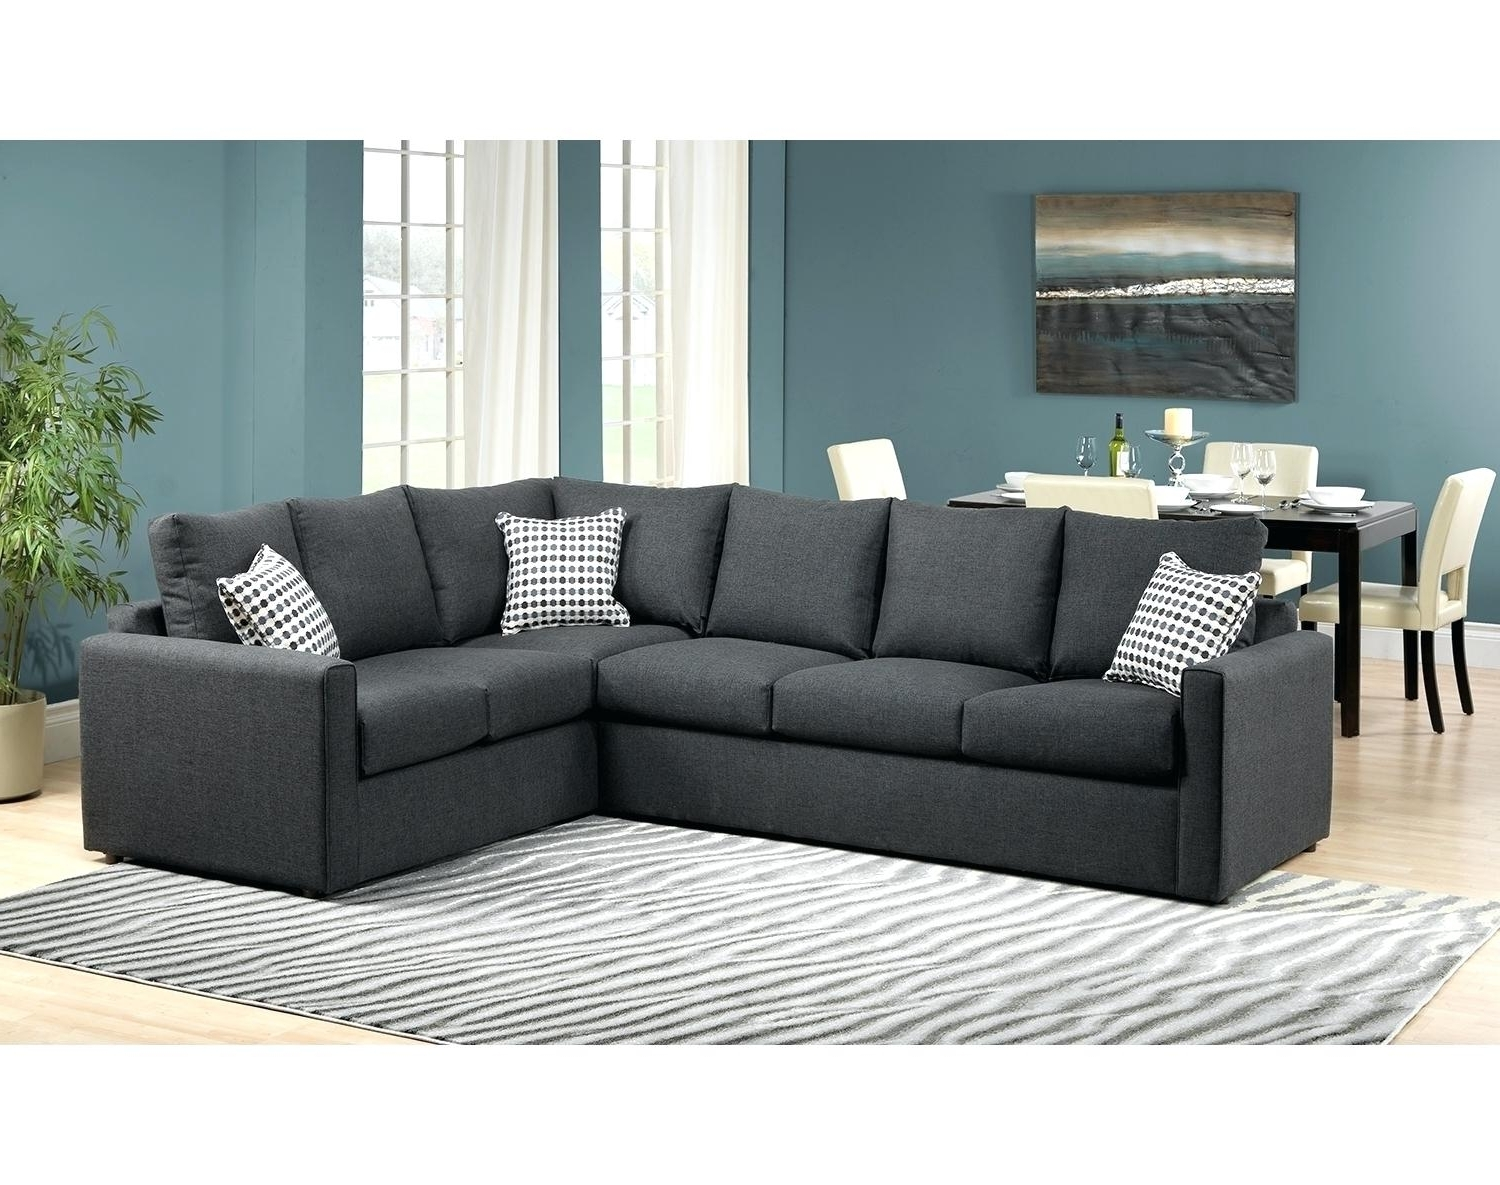 Sofa Bed Sectional Sagraceful Sa Montreal Modern Canada Adjustable For Favorite Kijiji Montreal Sectional Sofas (View 14 of 15)